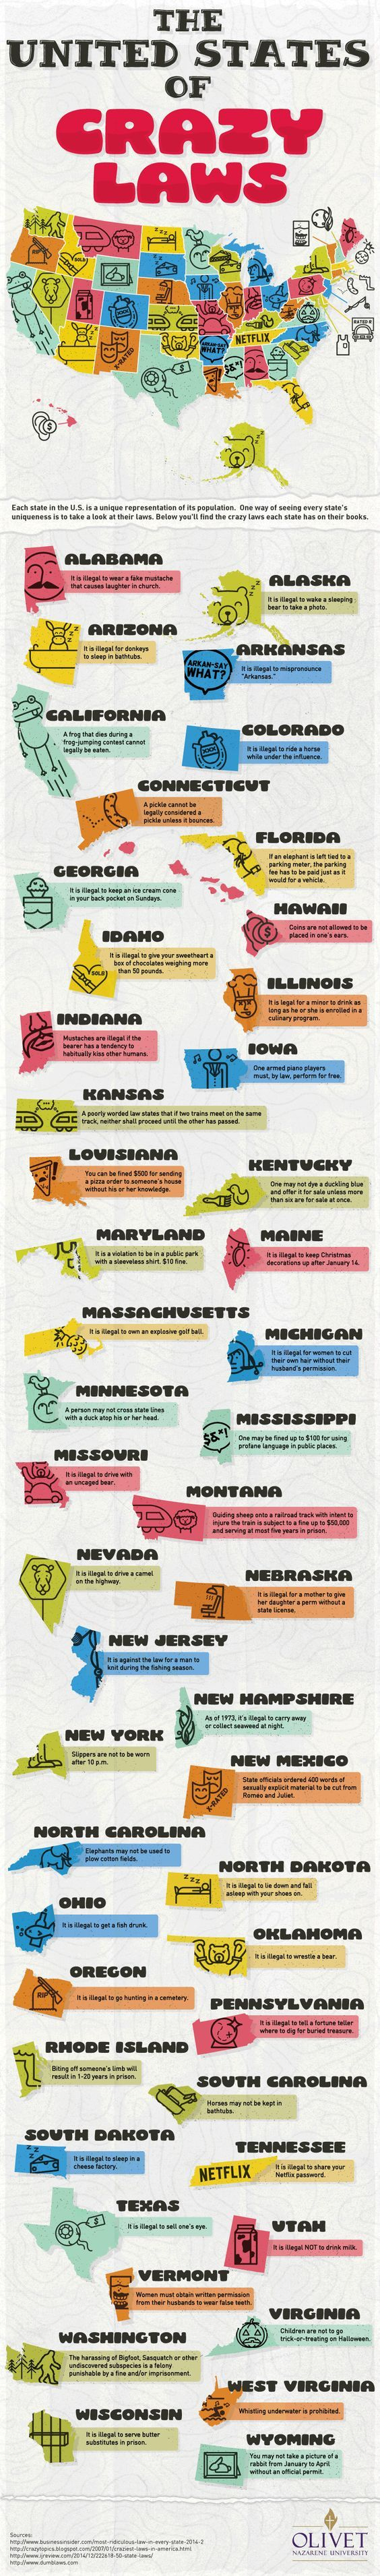 The United States of Crazy Laws #Infographic #Law